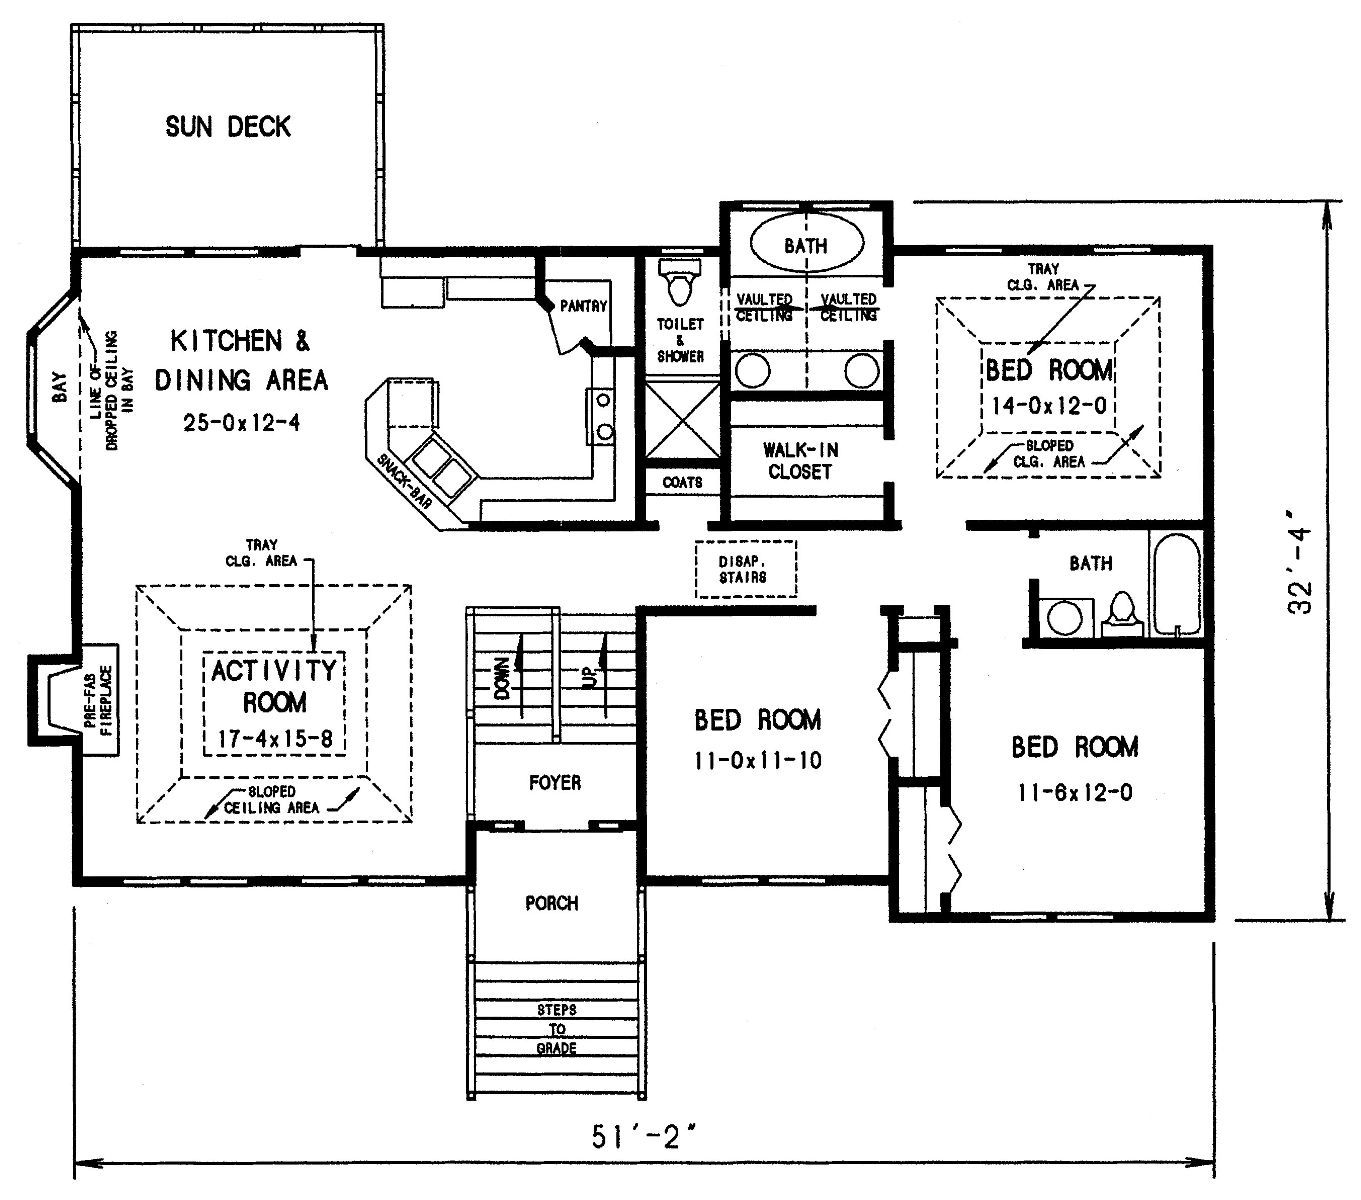 Perfect. I'd extend the sun deck the length of the house and make it on unique split level home plans, split foyer homes, split plan floor plans, raised ranch floor plans, three-level split floor plans, 1970s split entry floor plans, split level manufactured homes, modern split level floor plans, split level house basement, split kitchen floor plans, double split master floor plans, split level luxury homes, split floor plans for small homes, split level garage plans, 1970s split-level floor plans, 1960 split-level floor plans, modern split level home plans, backsplit floor plans, split level custom homes, 1977 split level home plans,